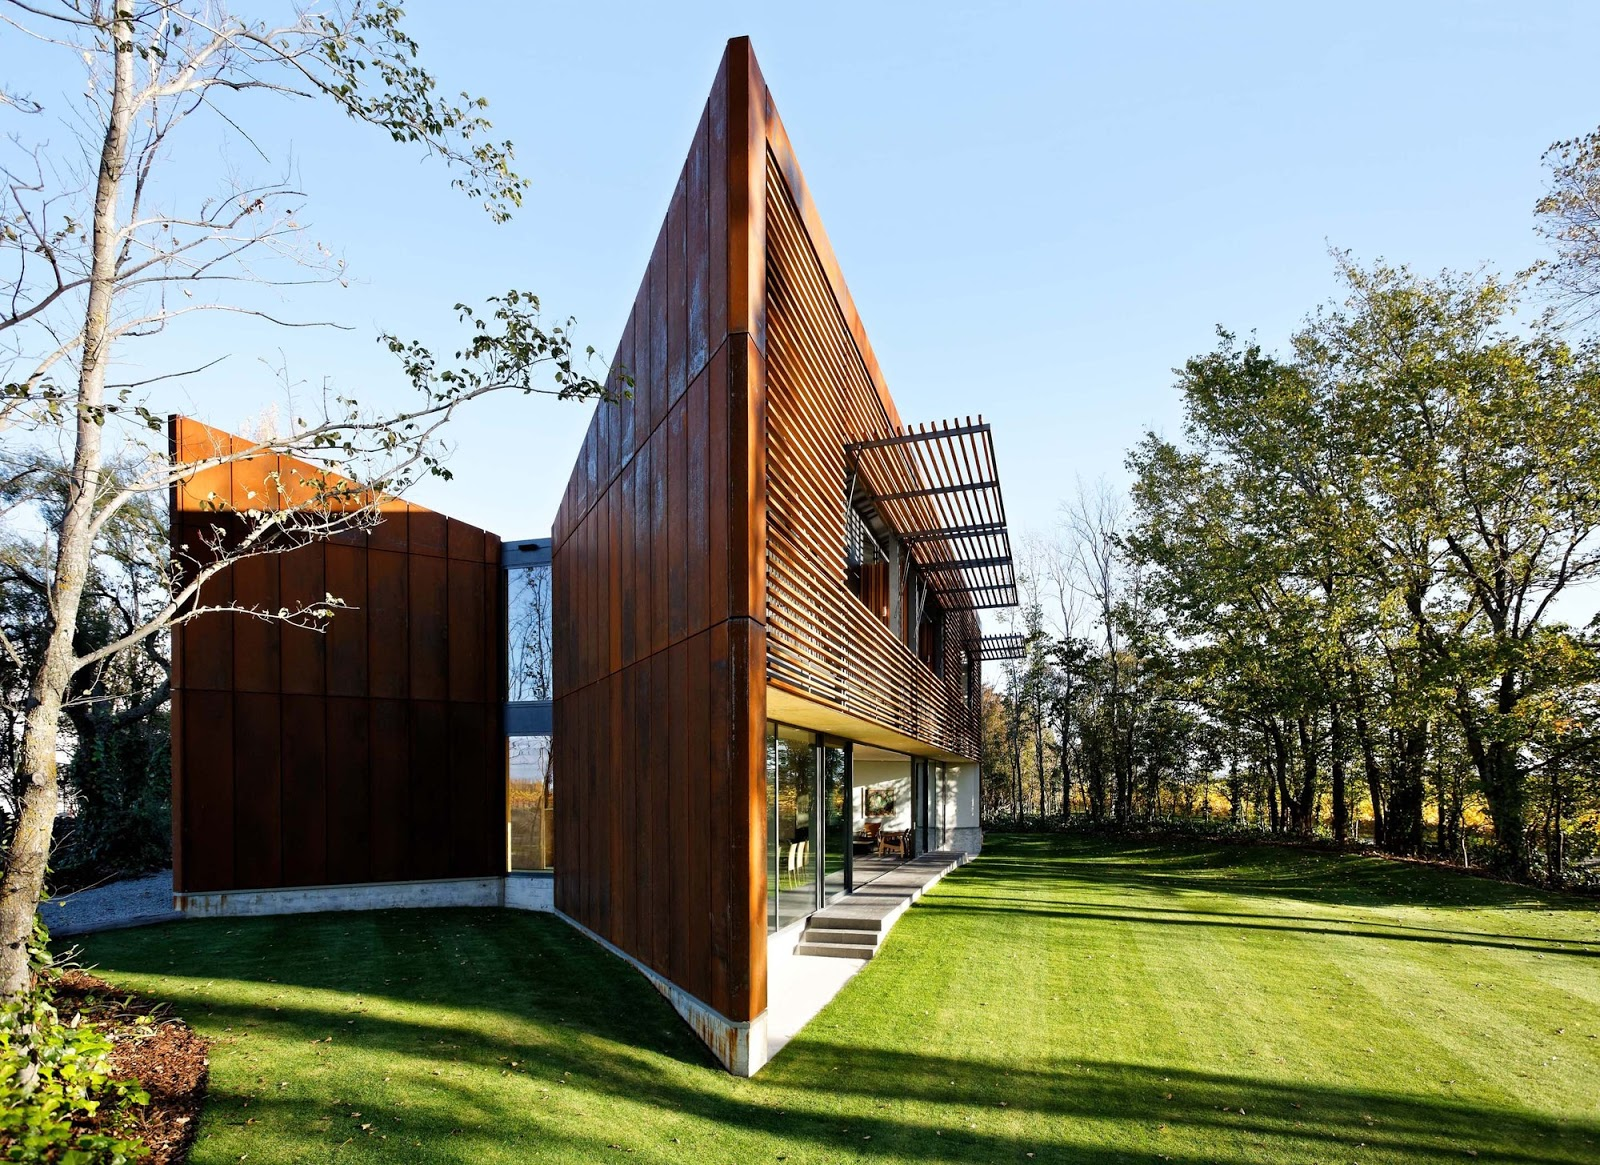 Void matters architecture references cloudy bay winery by tonkin zulaikha greer architects - Bay architecture ...